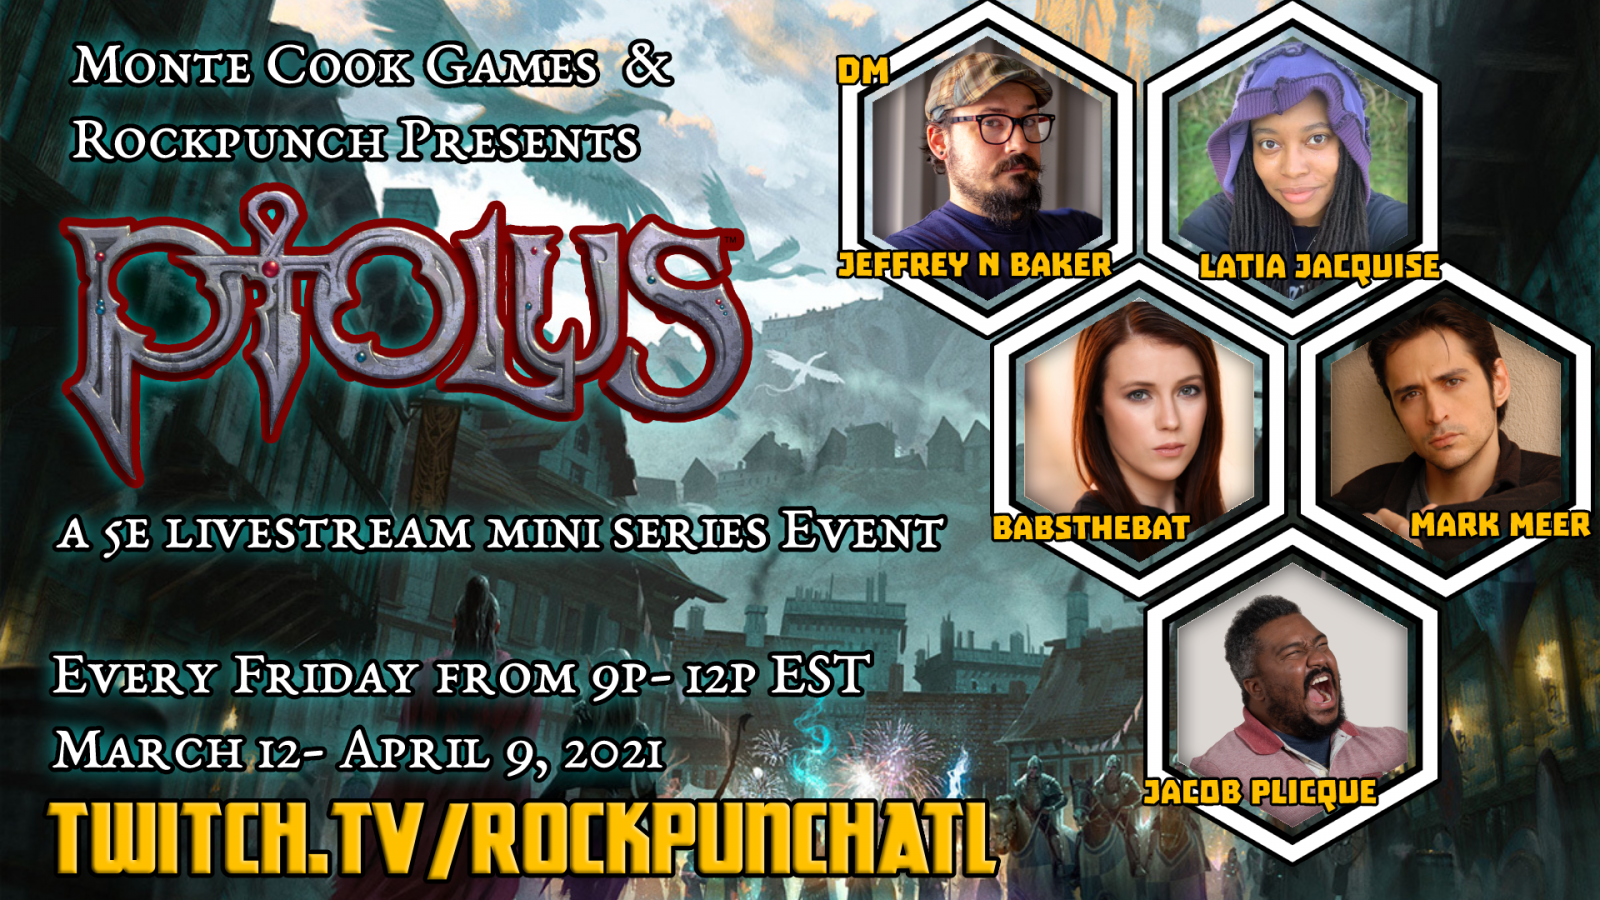 Image of RockPunchAlt Twitch channel showcasing the Ptolus livestream mini series event to be streamed every Friday between March 12th and April 9th. Image shows photos of the GM and cast members over a Ptolus illustration.